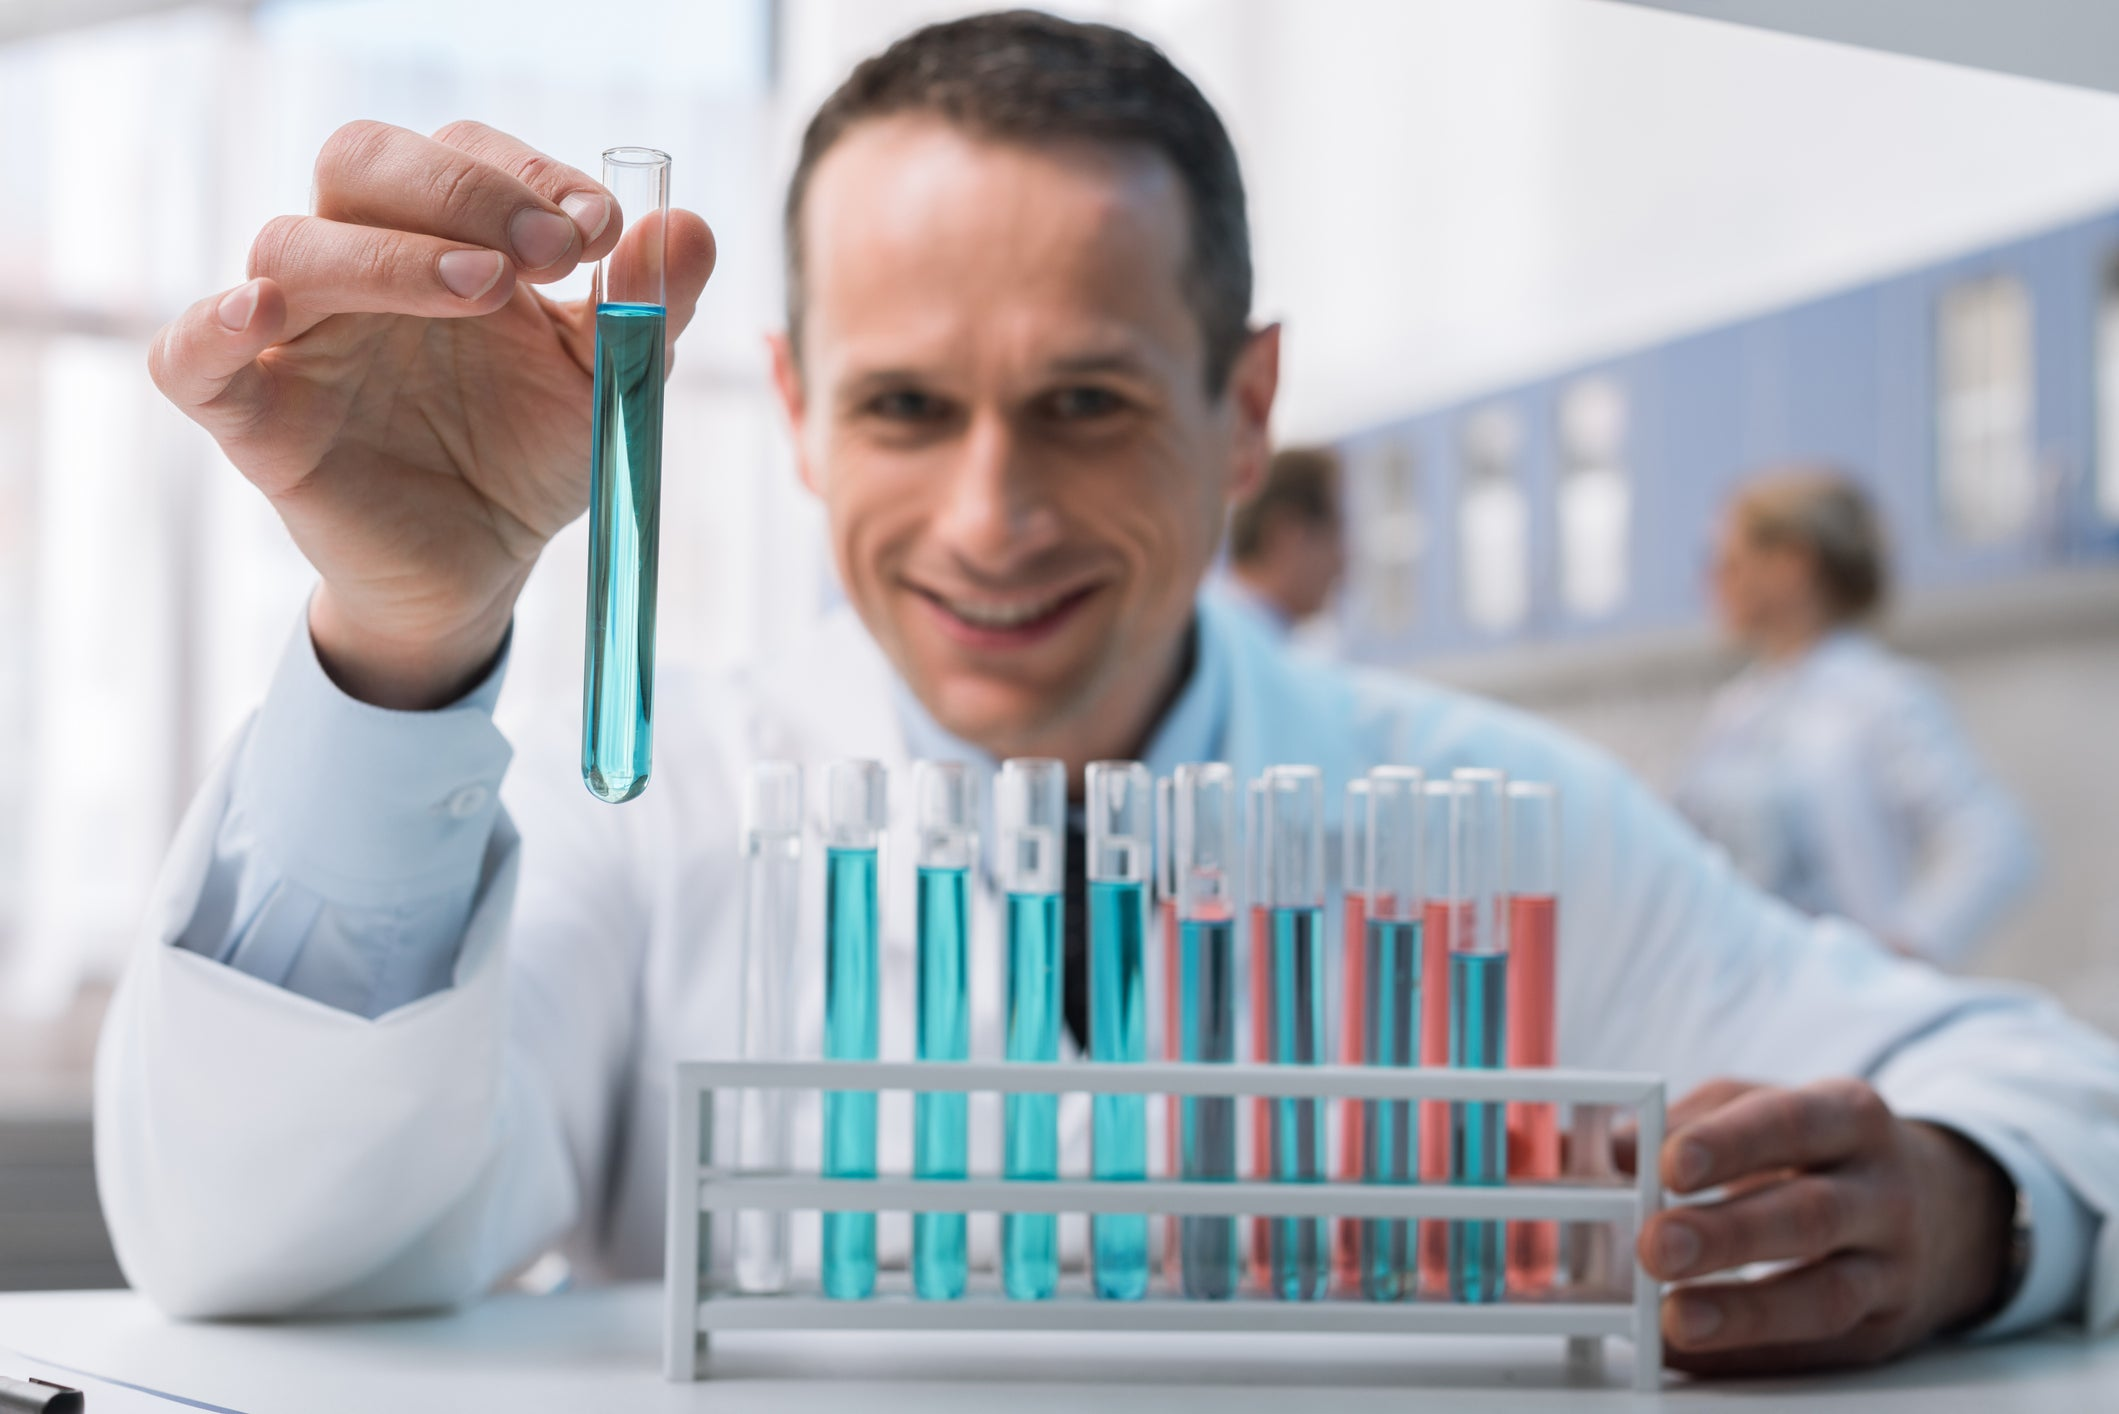 3 Great Reasons to Buy Gilead Sciences Stock | The Motley Fool